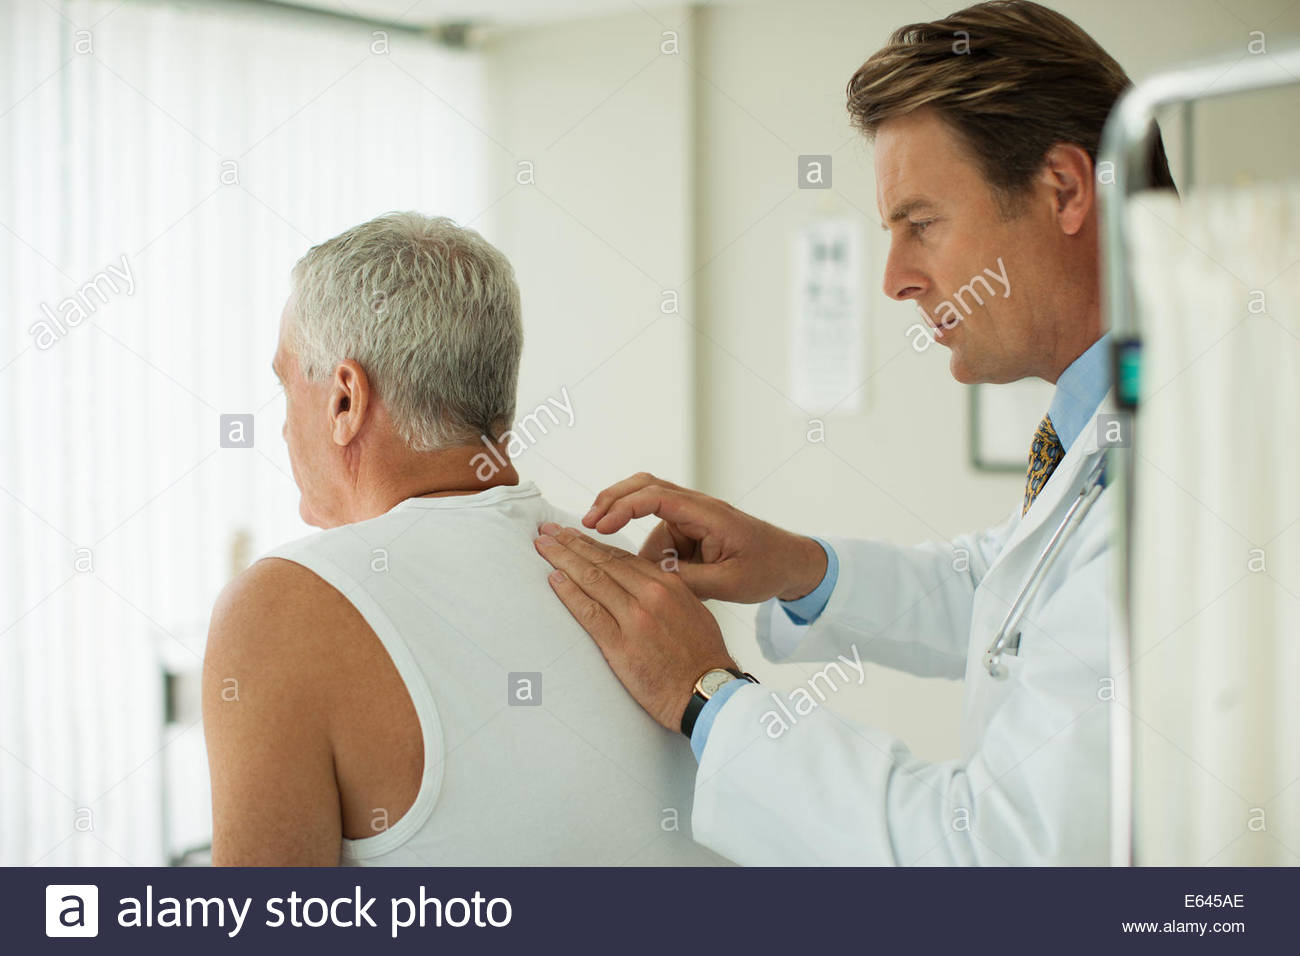 Doctor tapping on patientÂ's back - Stock Image